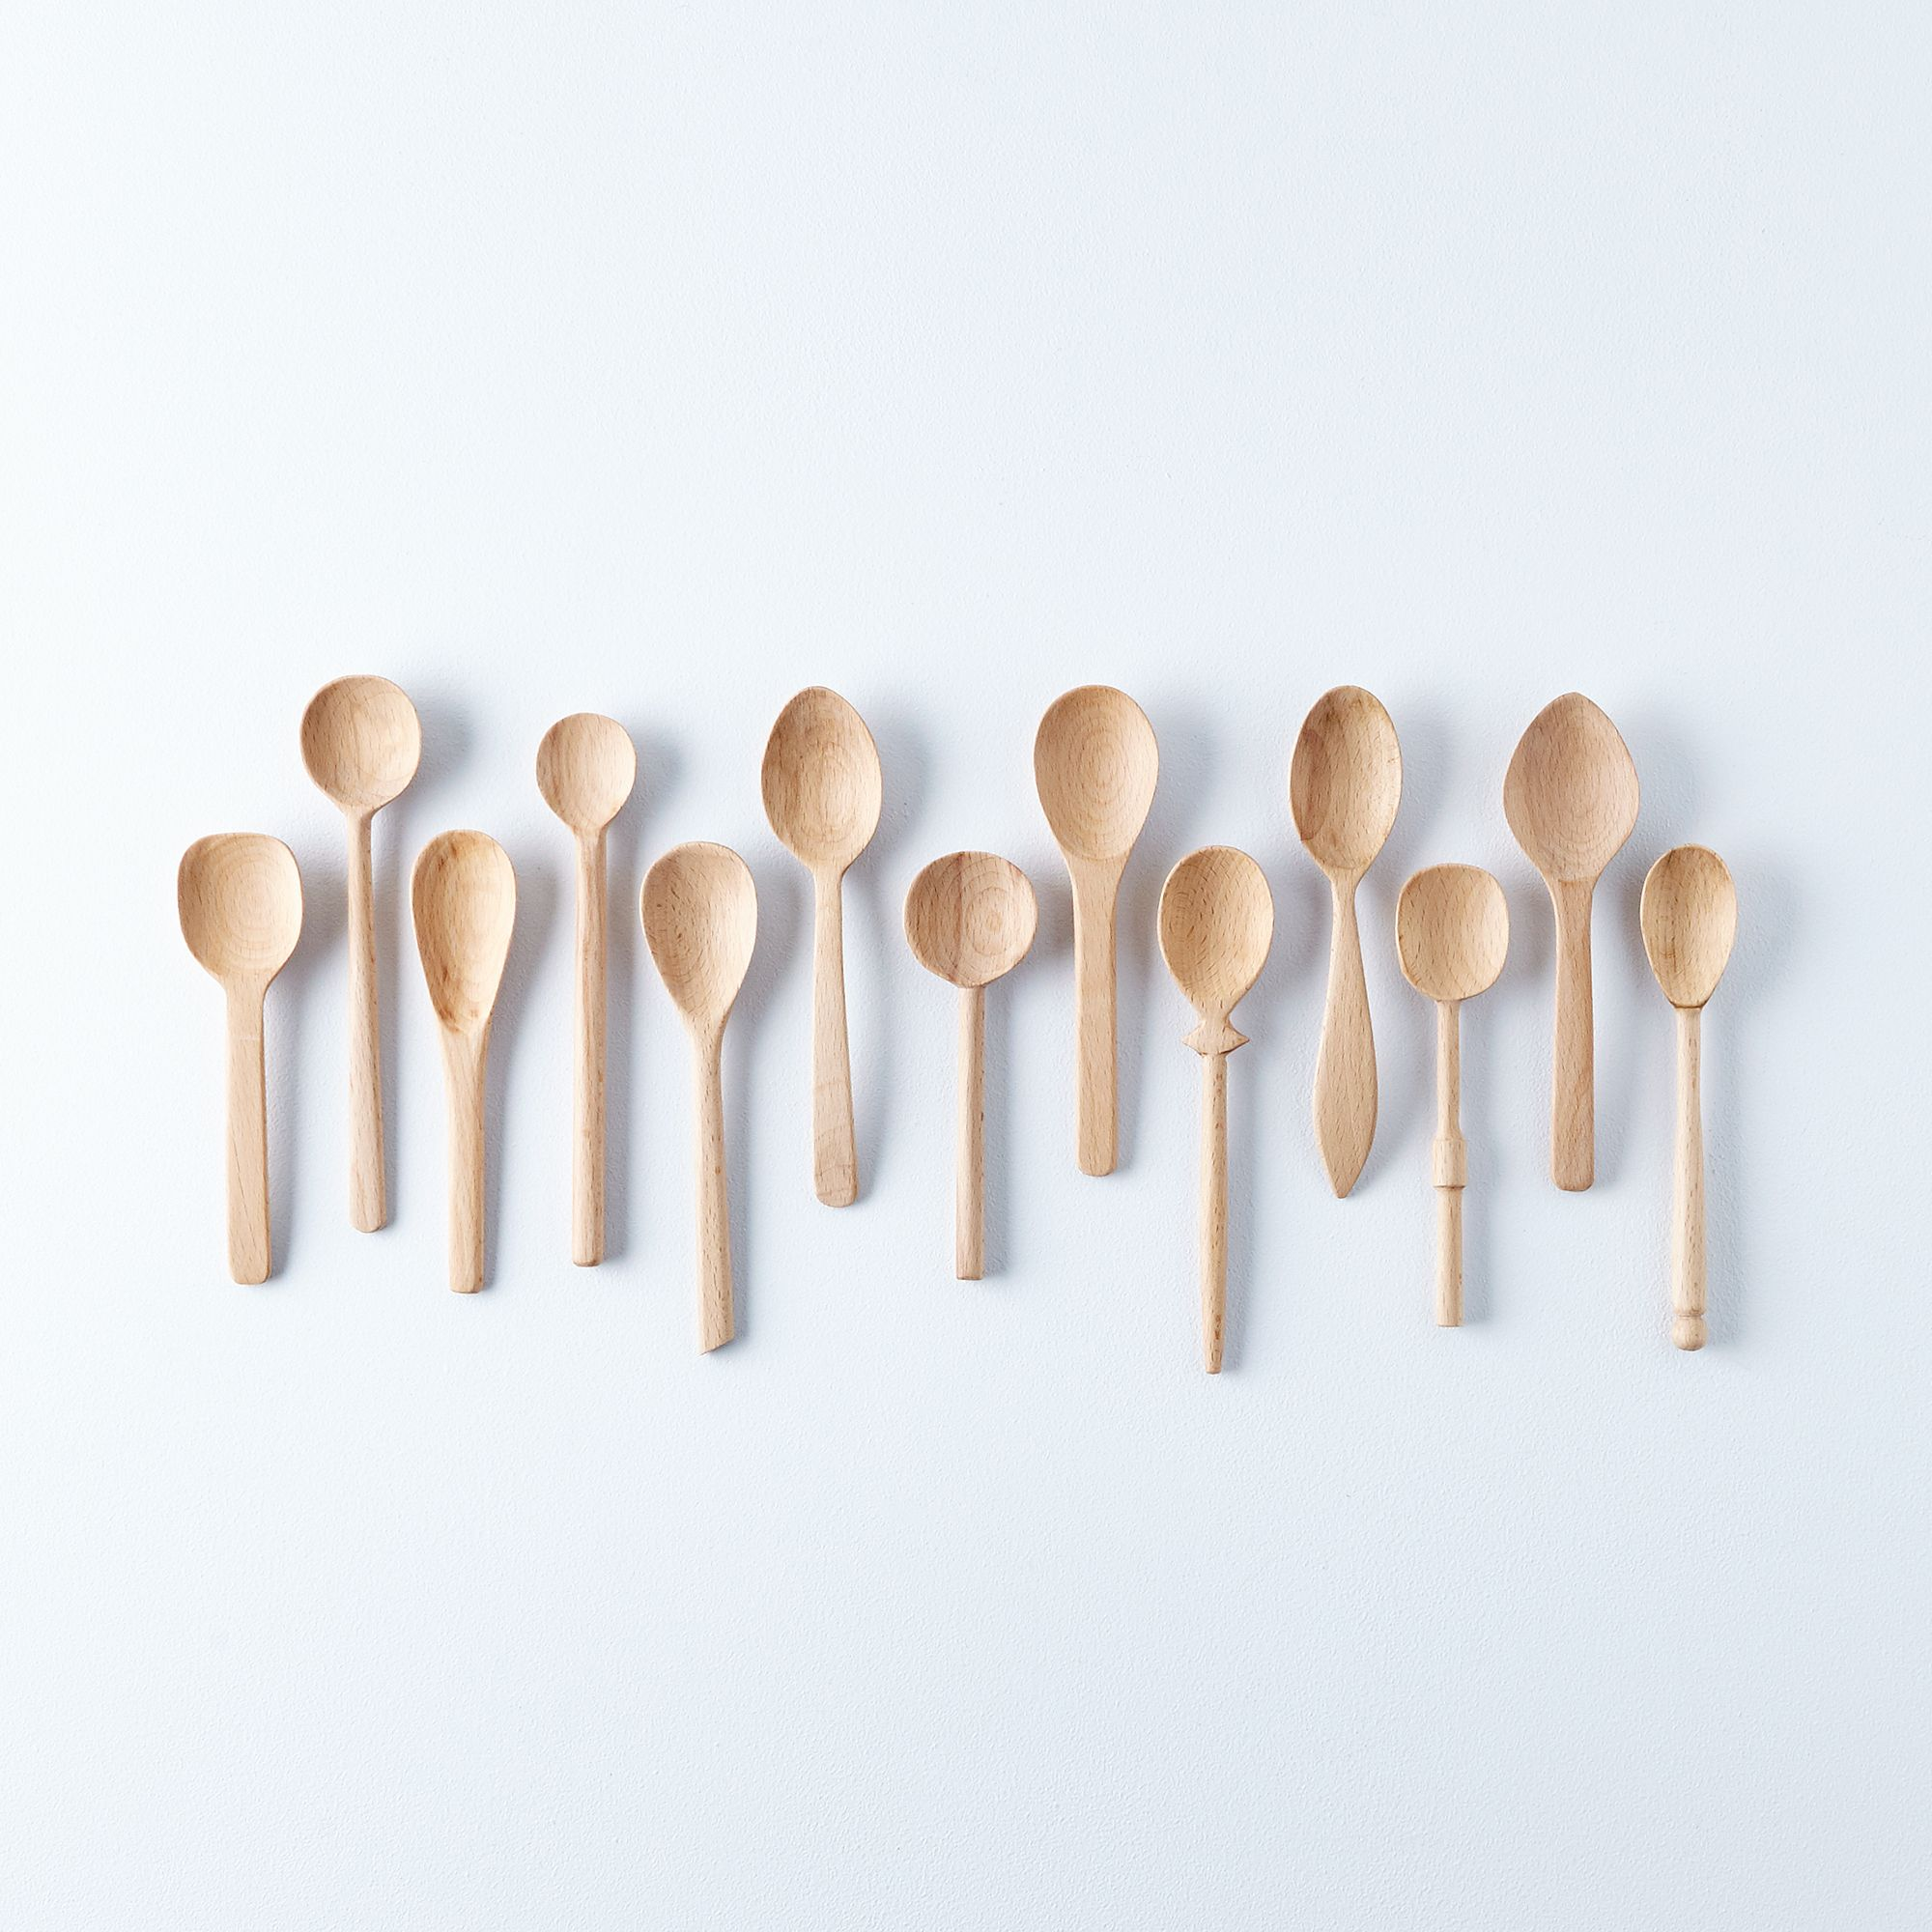 B8bee482 a0f8 11e5 a190 0ef7535729df  2015 0712 sir madam bakers dozen wooden spoons small silo rocky luten 004